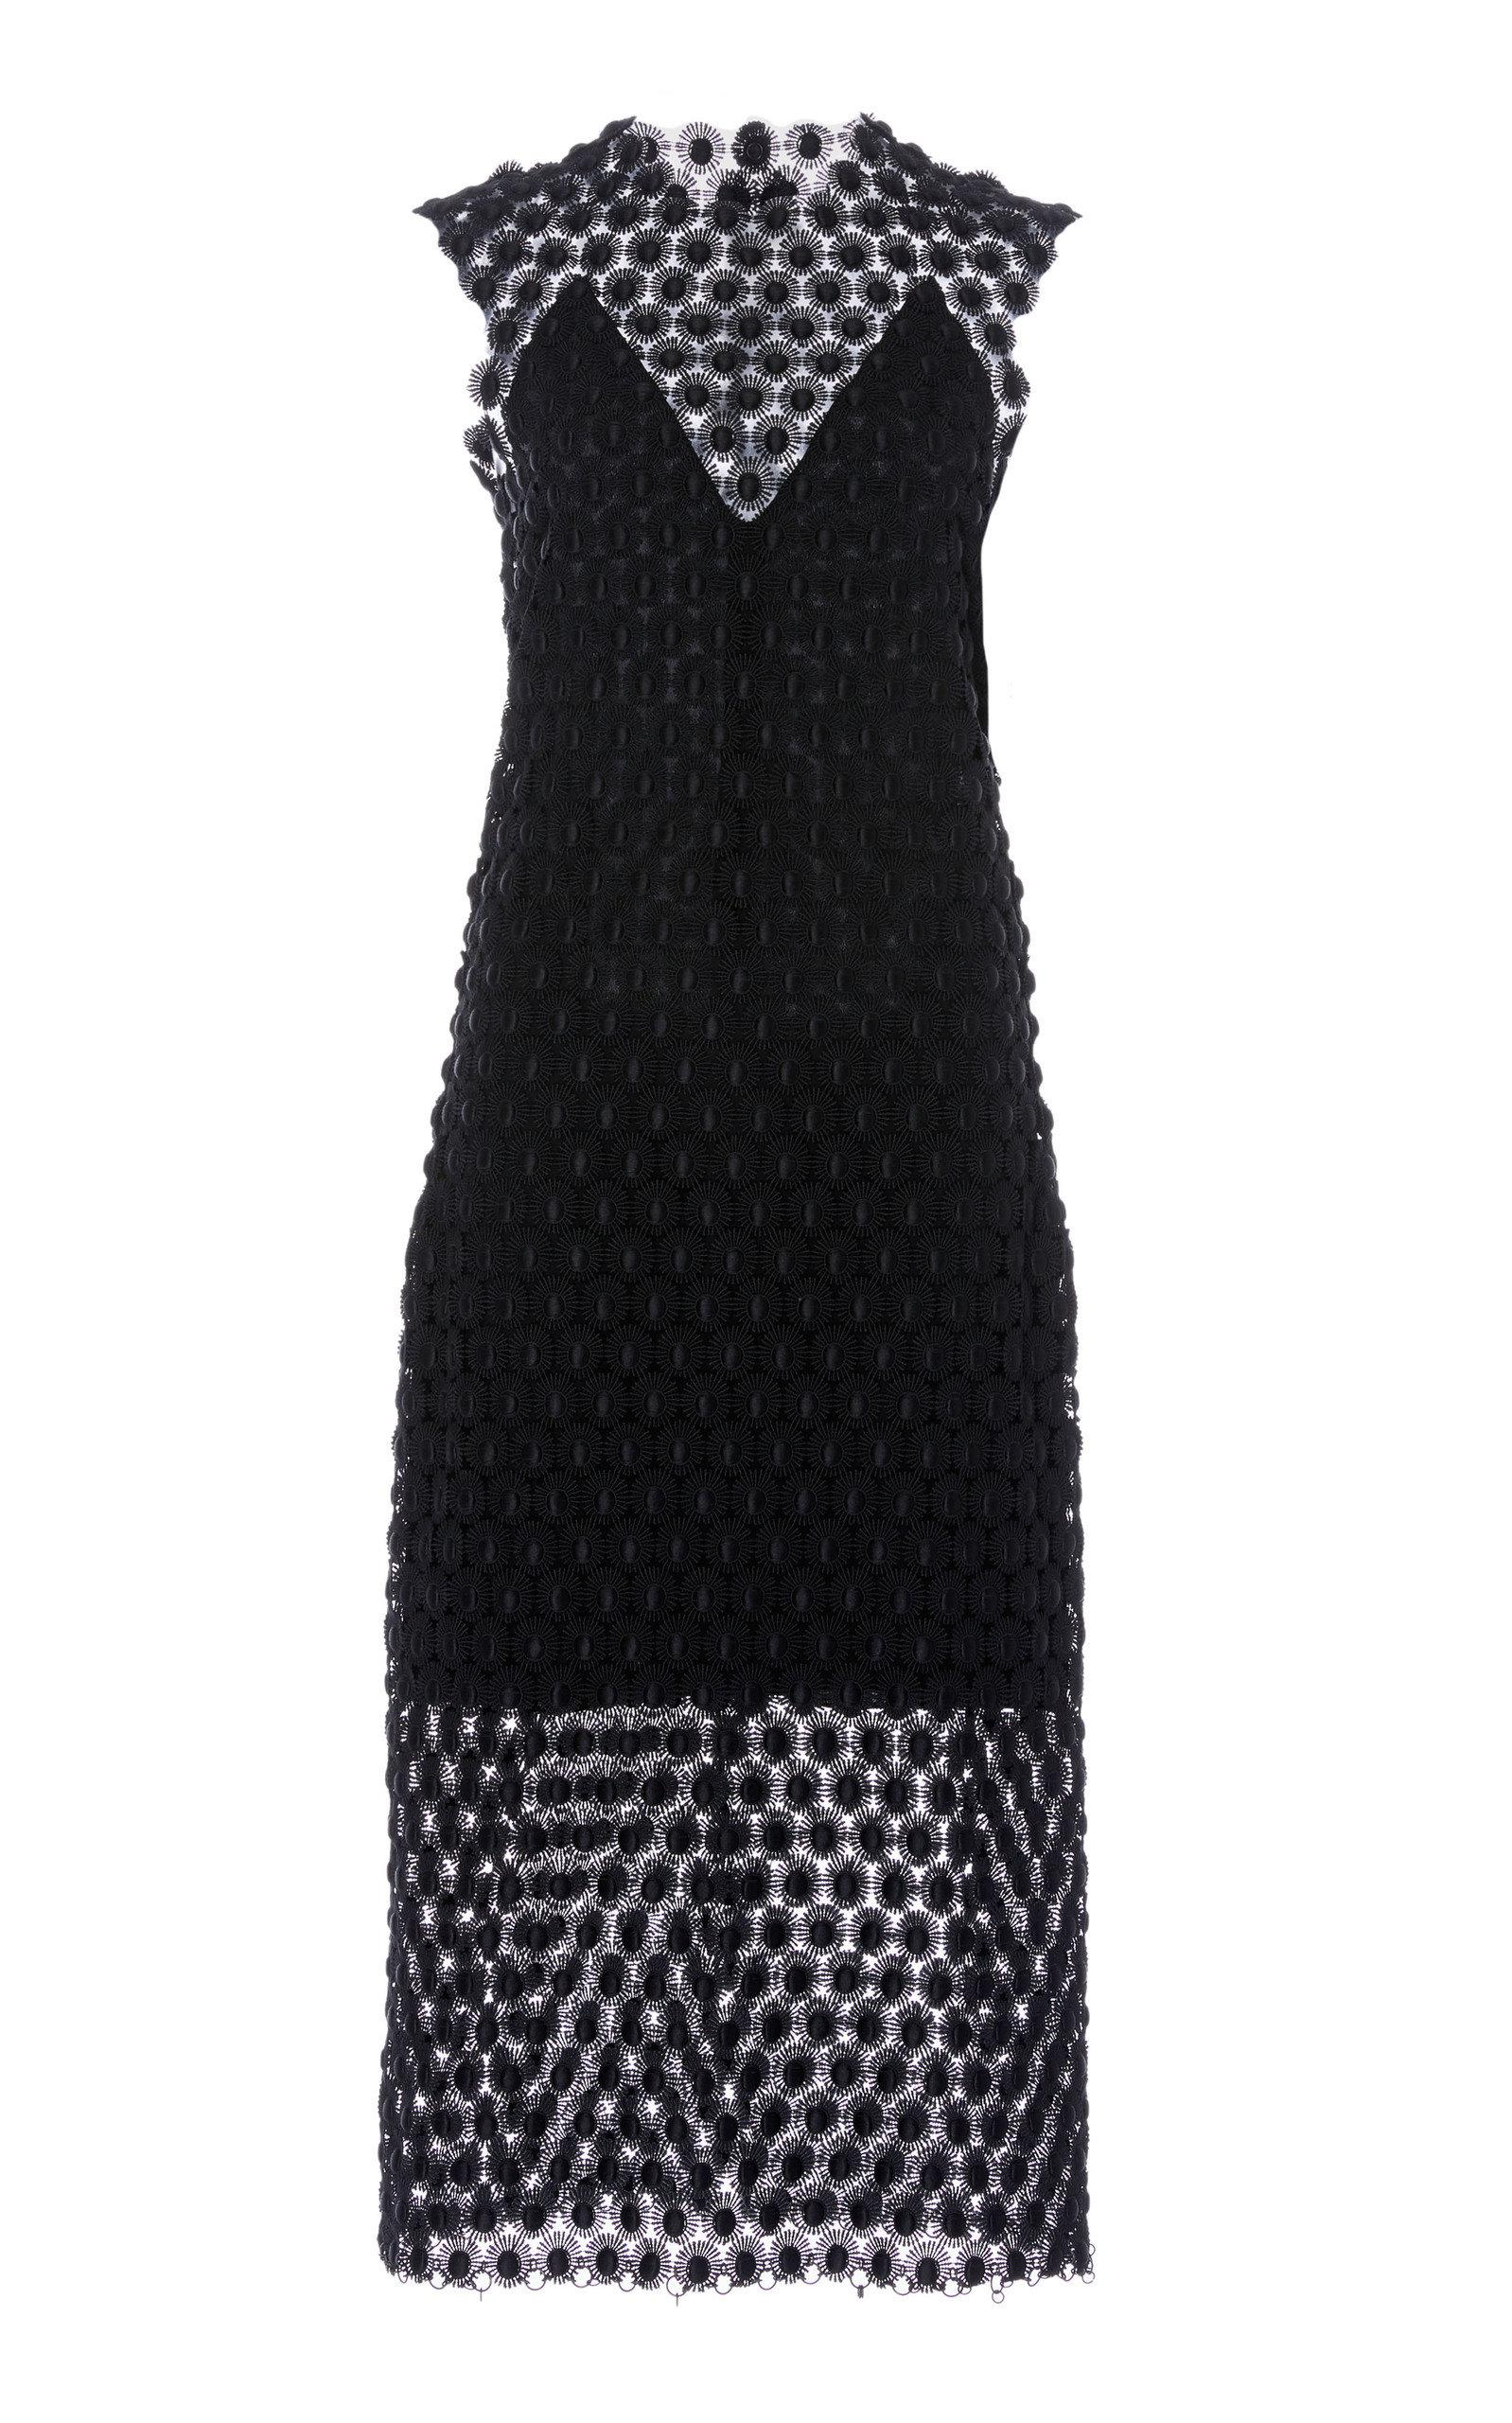 Cowl Neck Midi Dress Paco Rabanne Manchester Cheap Online dFpxW0